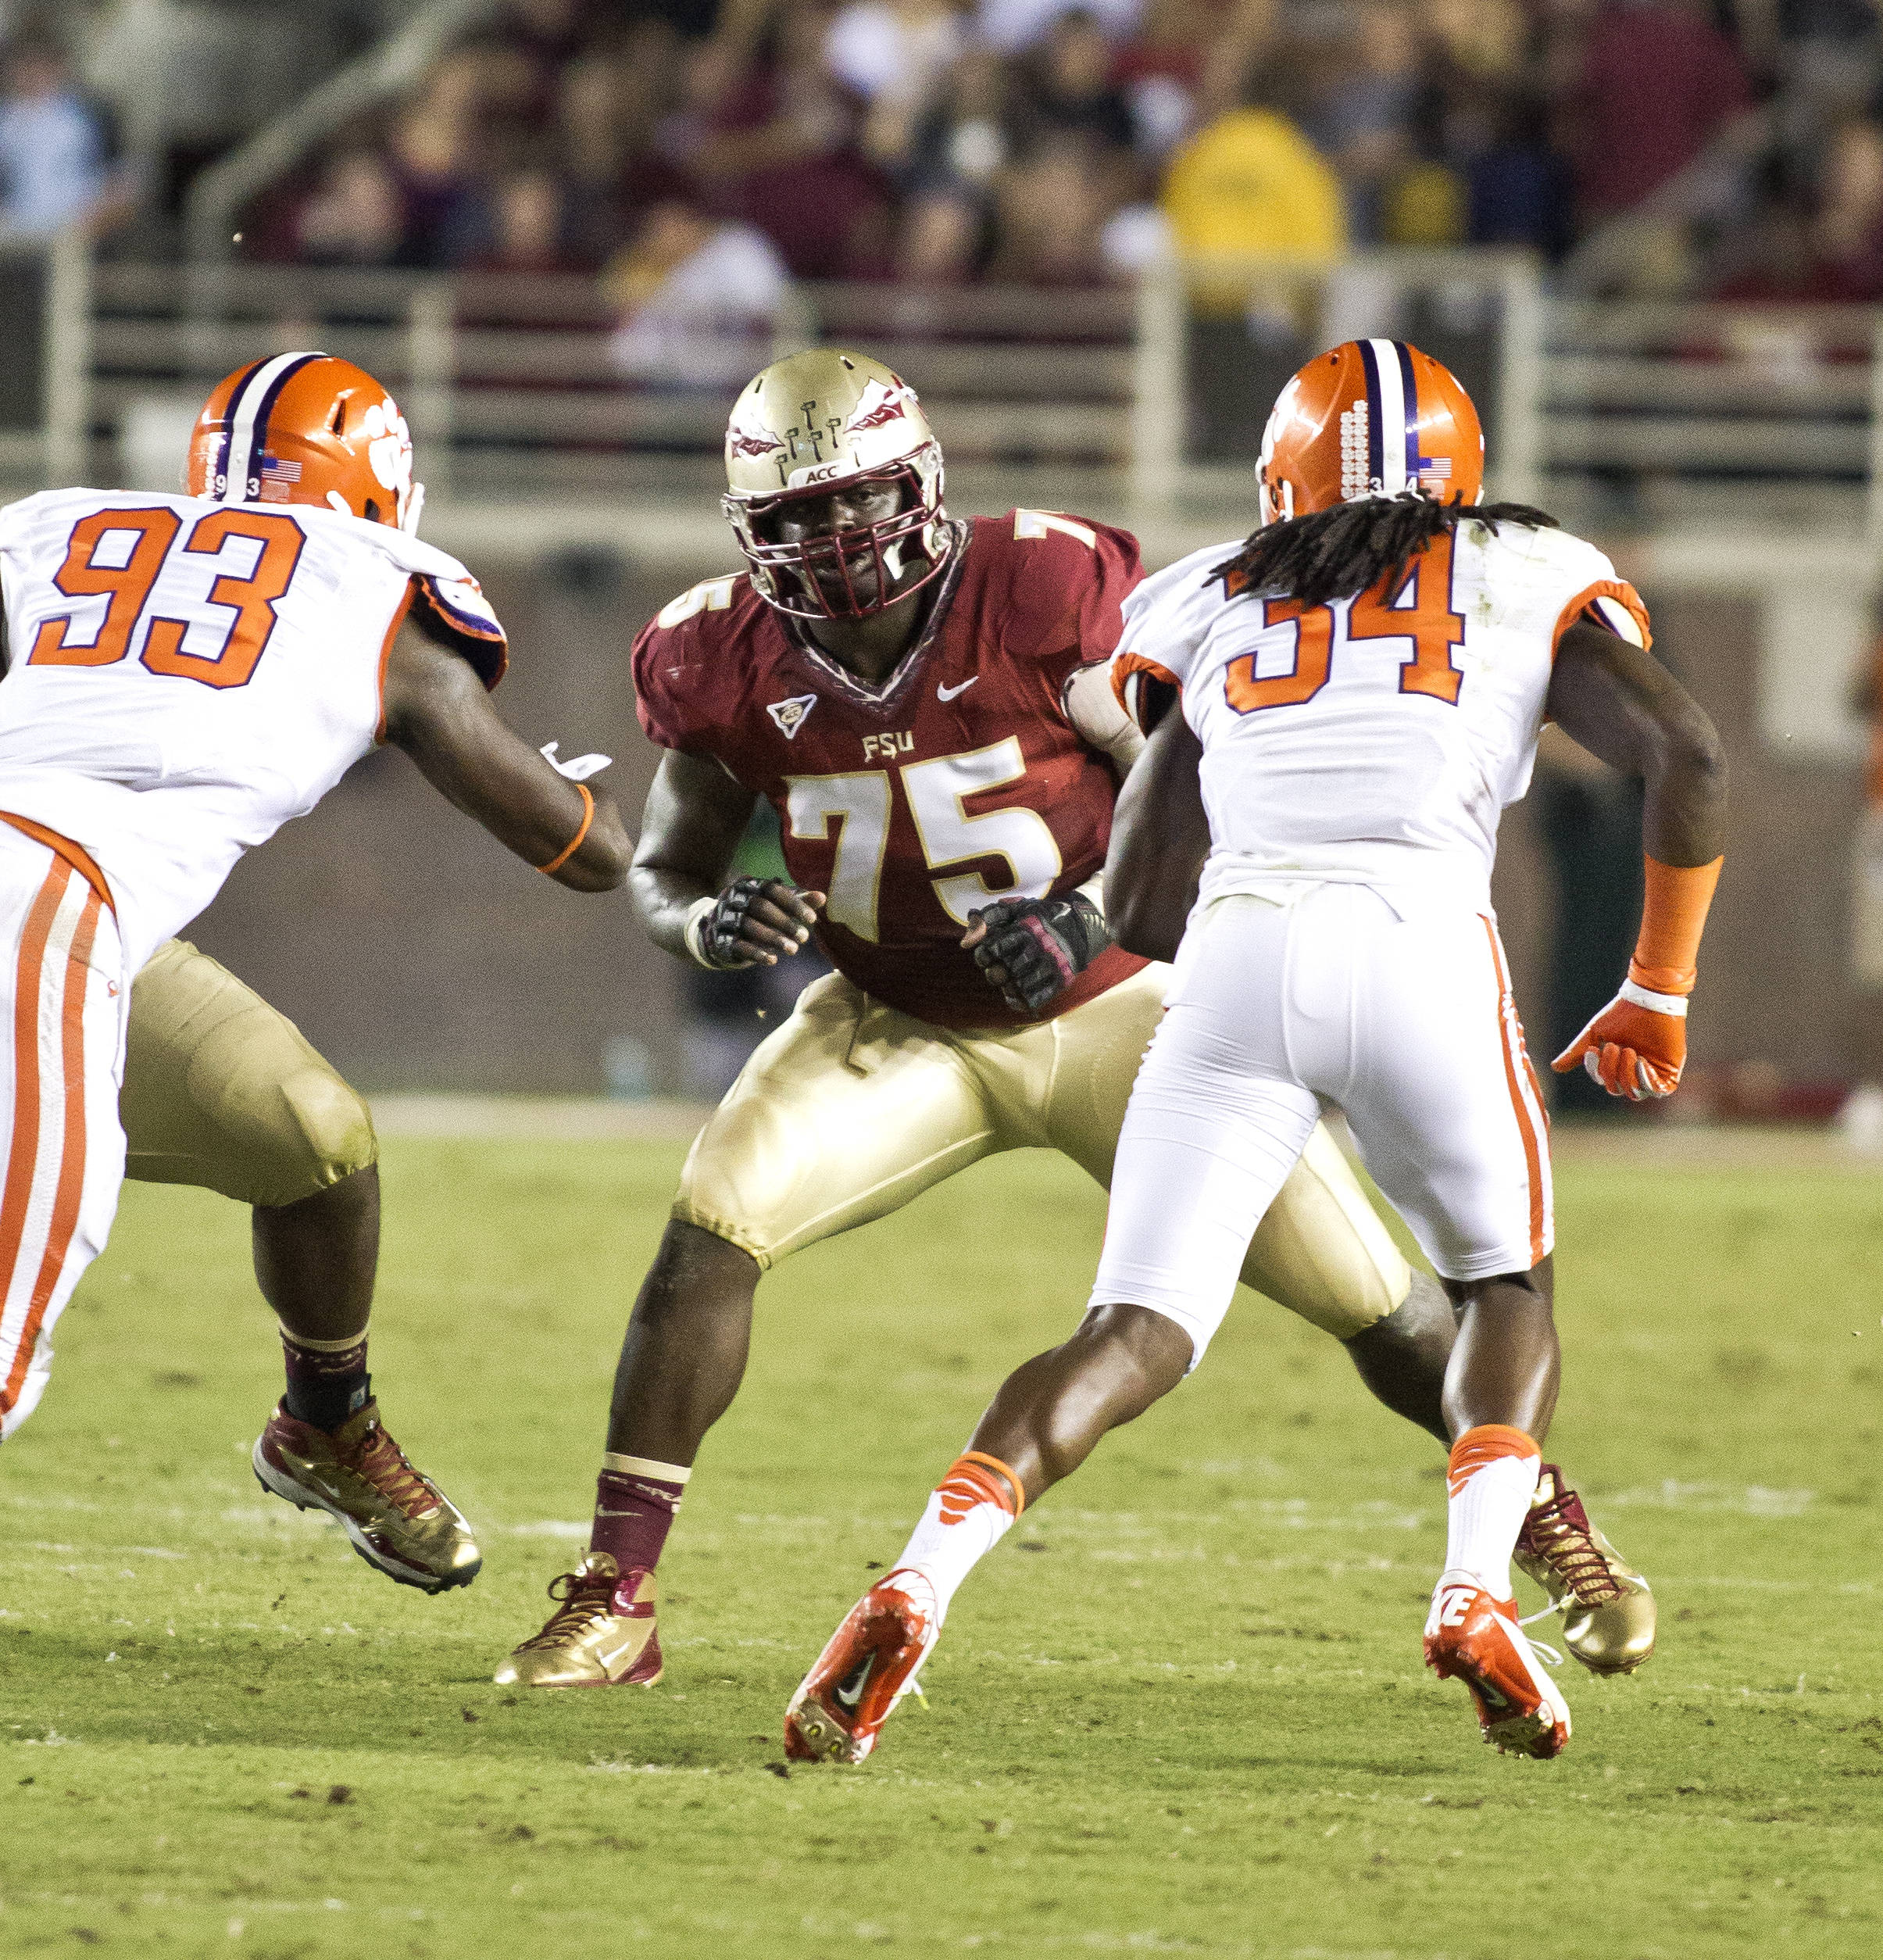 Cameron Erving (75) taking on two defensive players, FSU vs Clemson, 9/22/12 (Photo by Steve Musco)